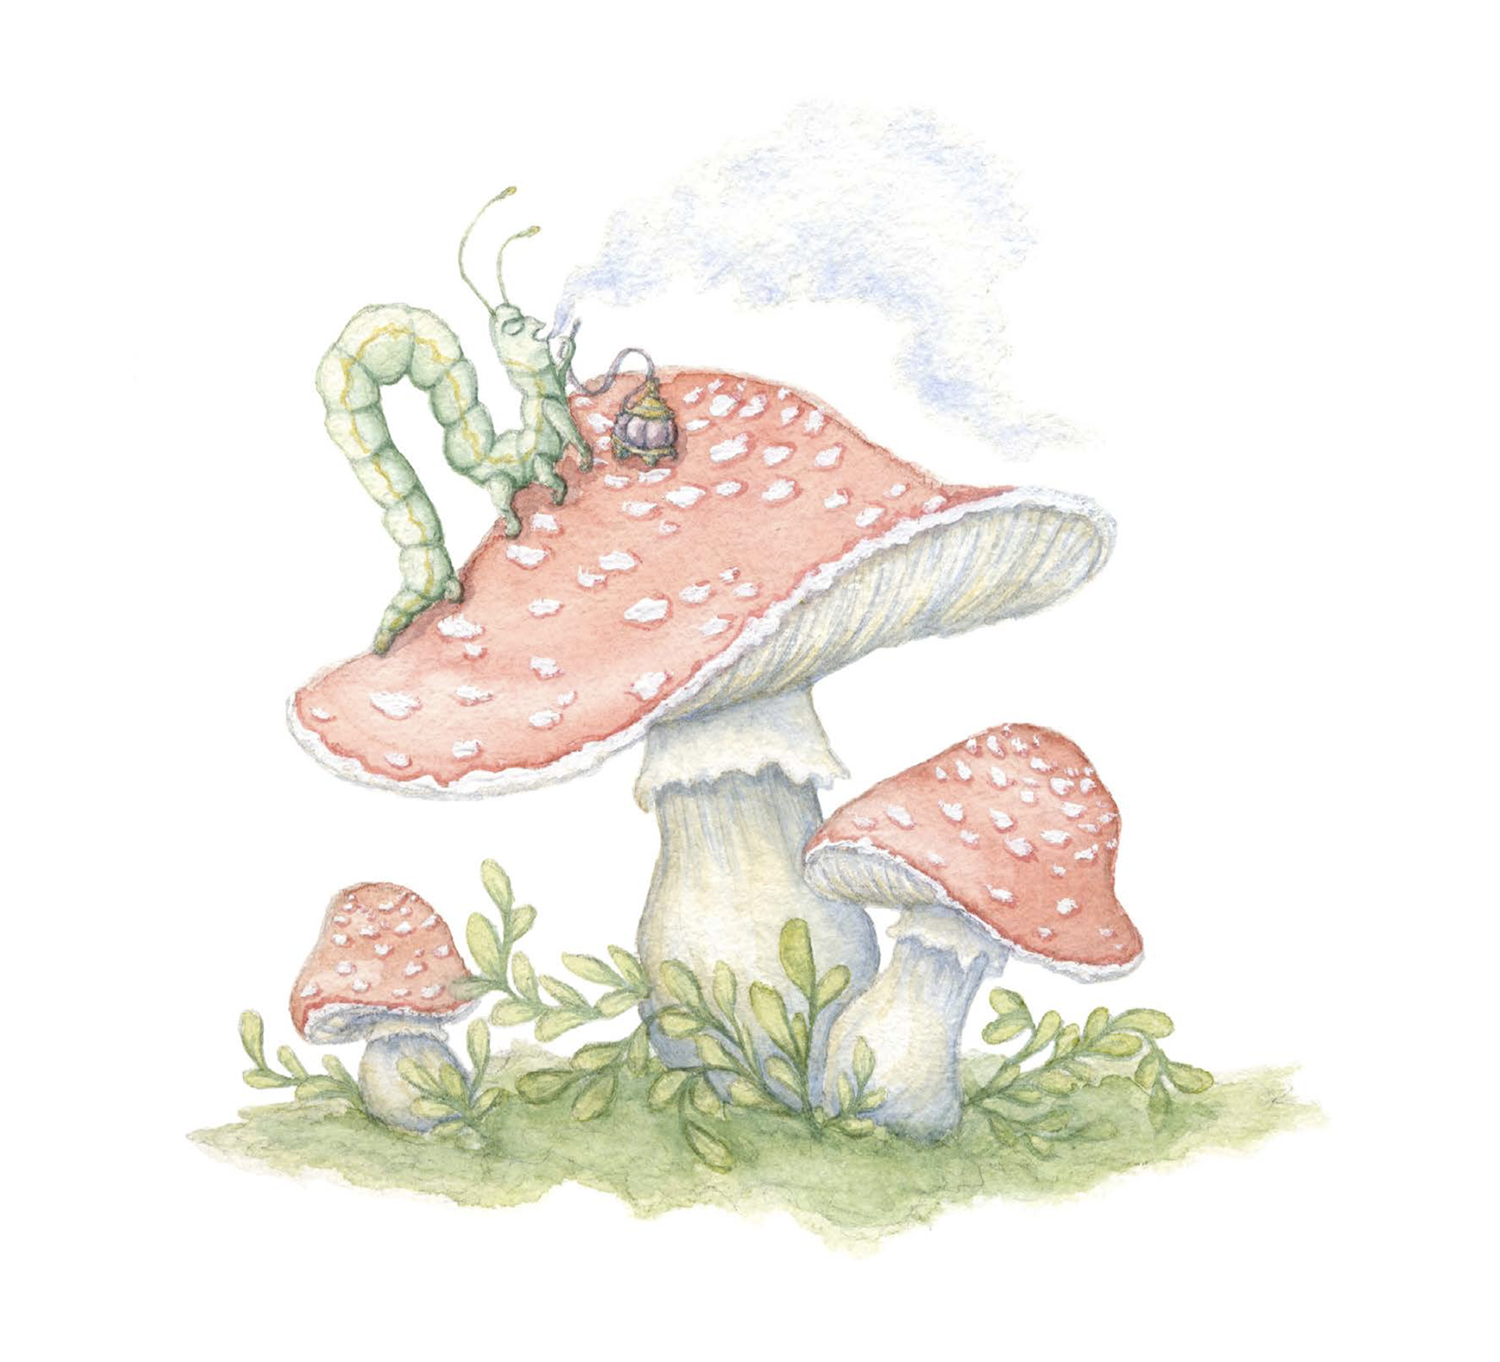 An illustration of a bug on top of a set of mushrooms.